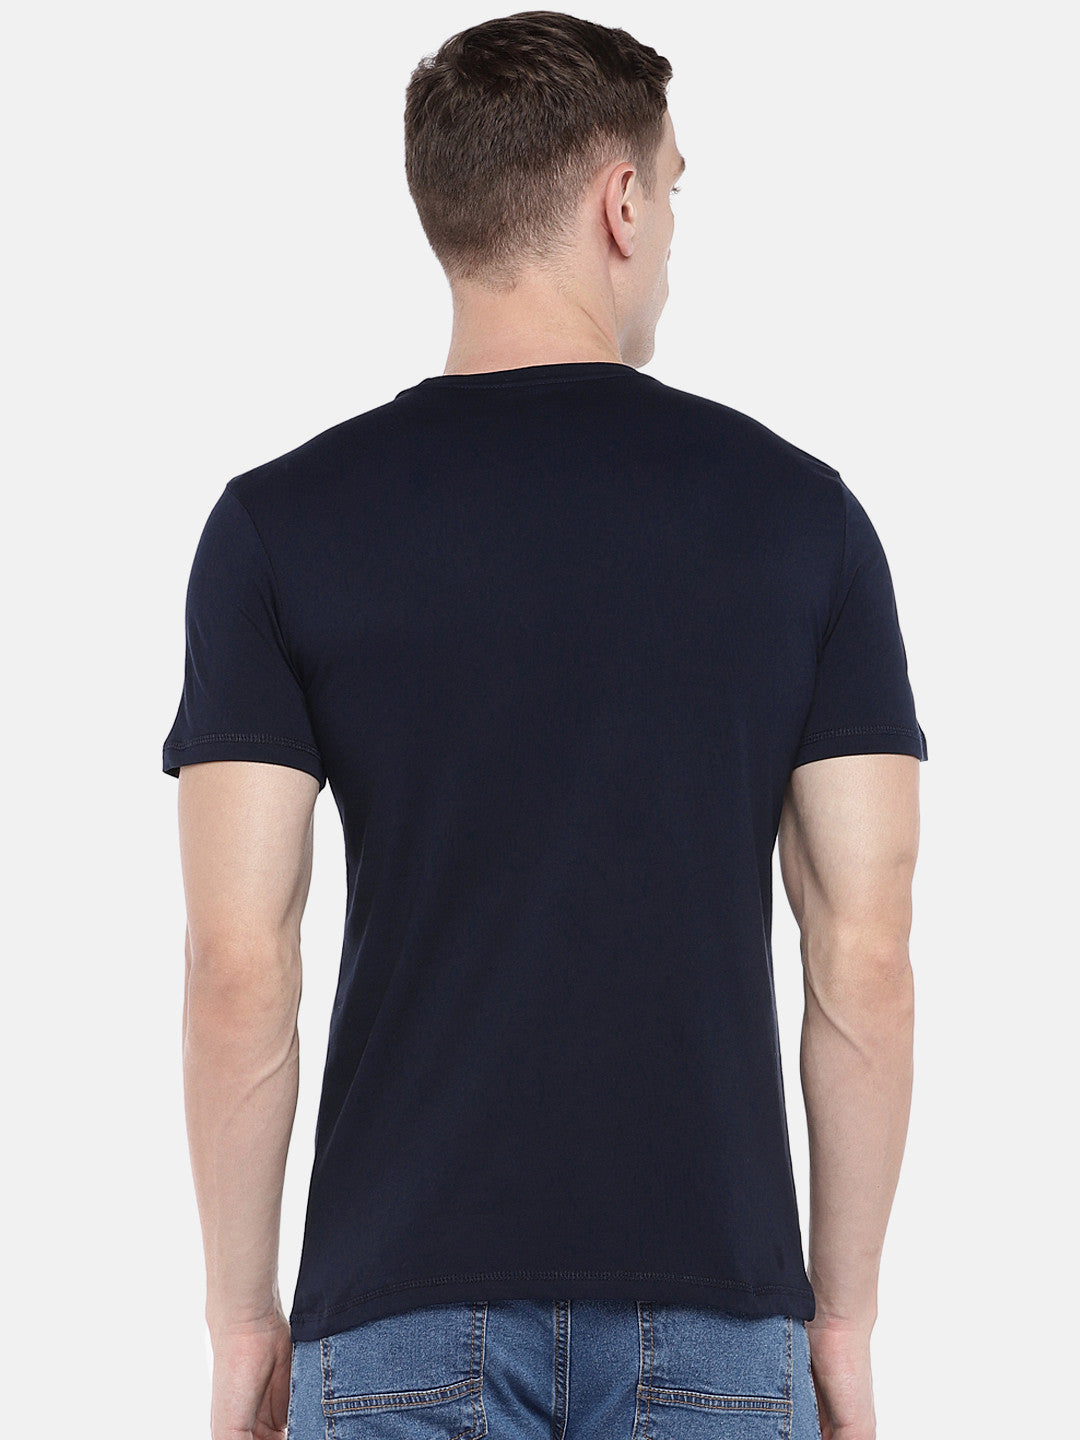 Navy Blue Printed Round Neck T-shirt-3